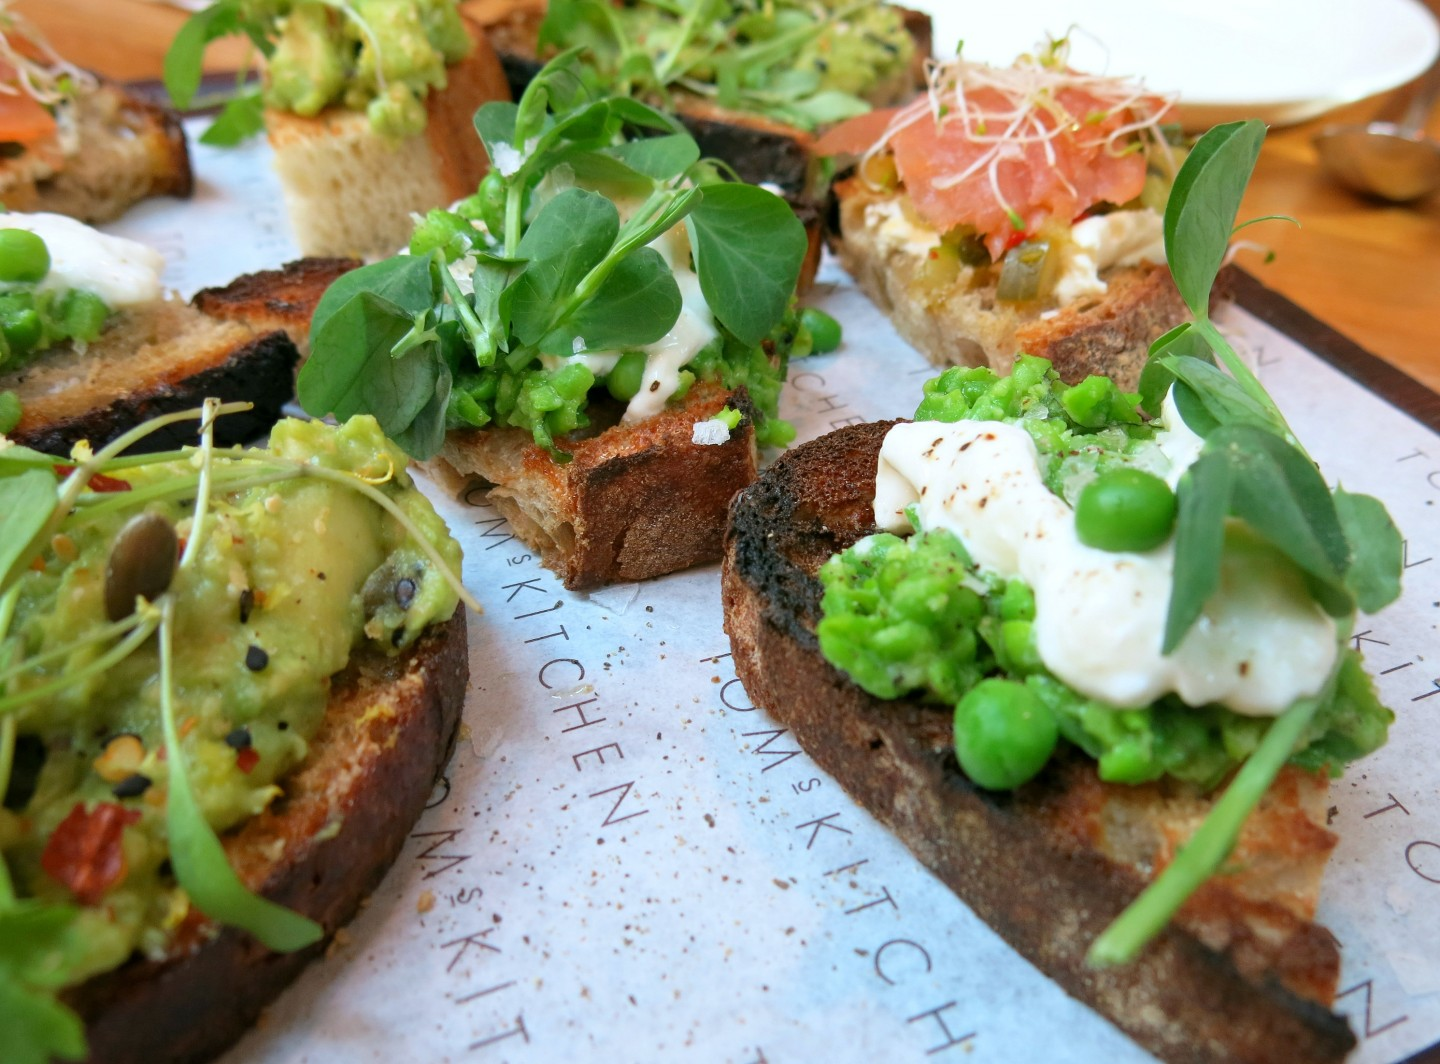 A trio of bruschetta at breakfast on the new menu at Tom's Kitchen in Chelsea, London.